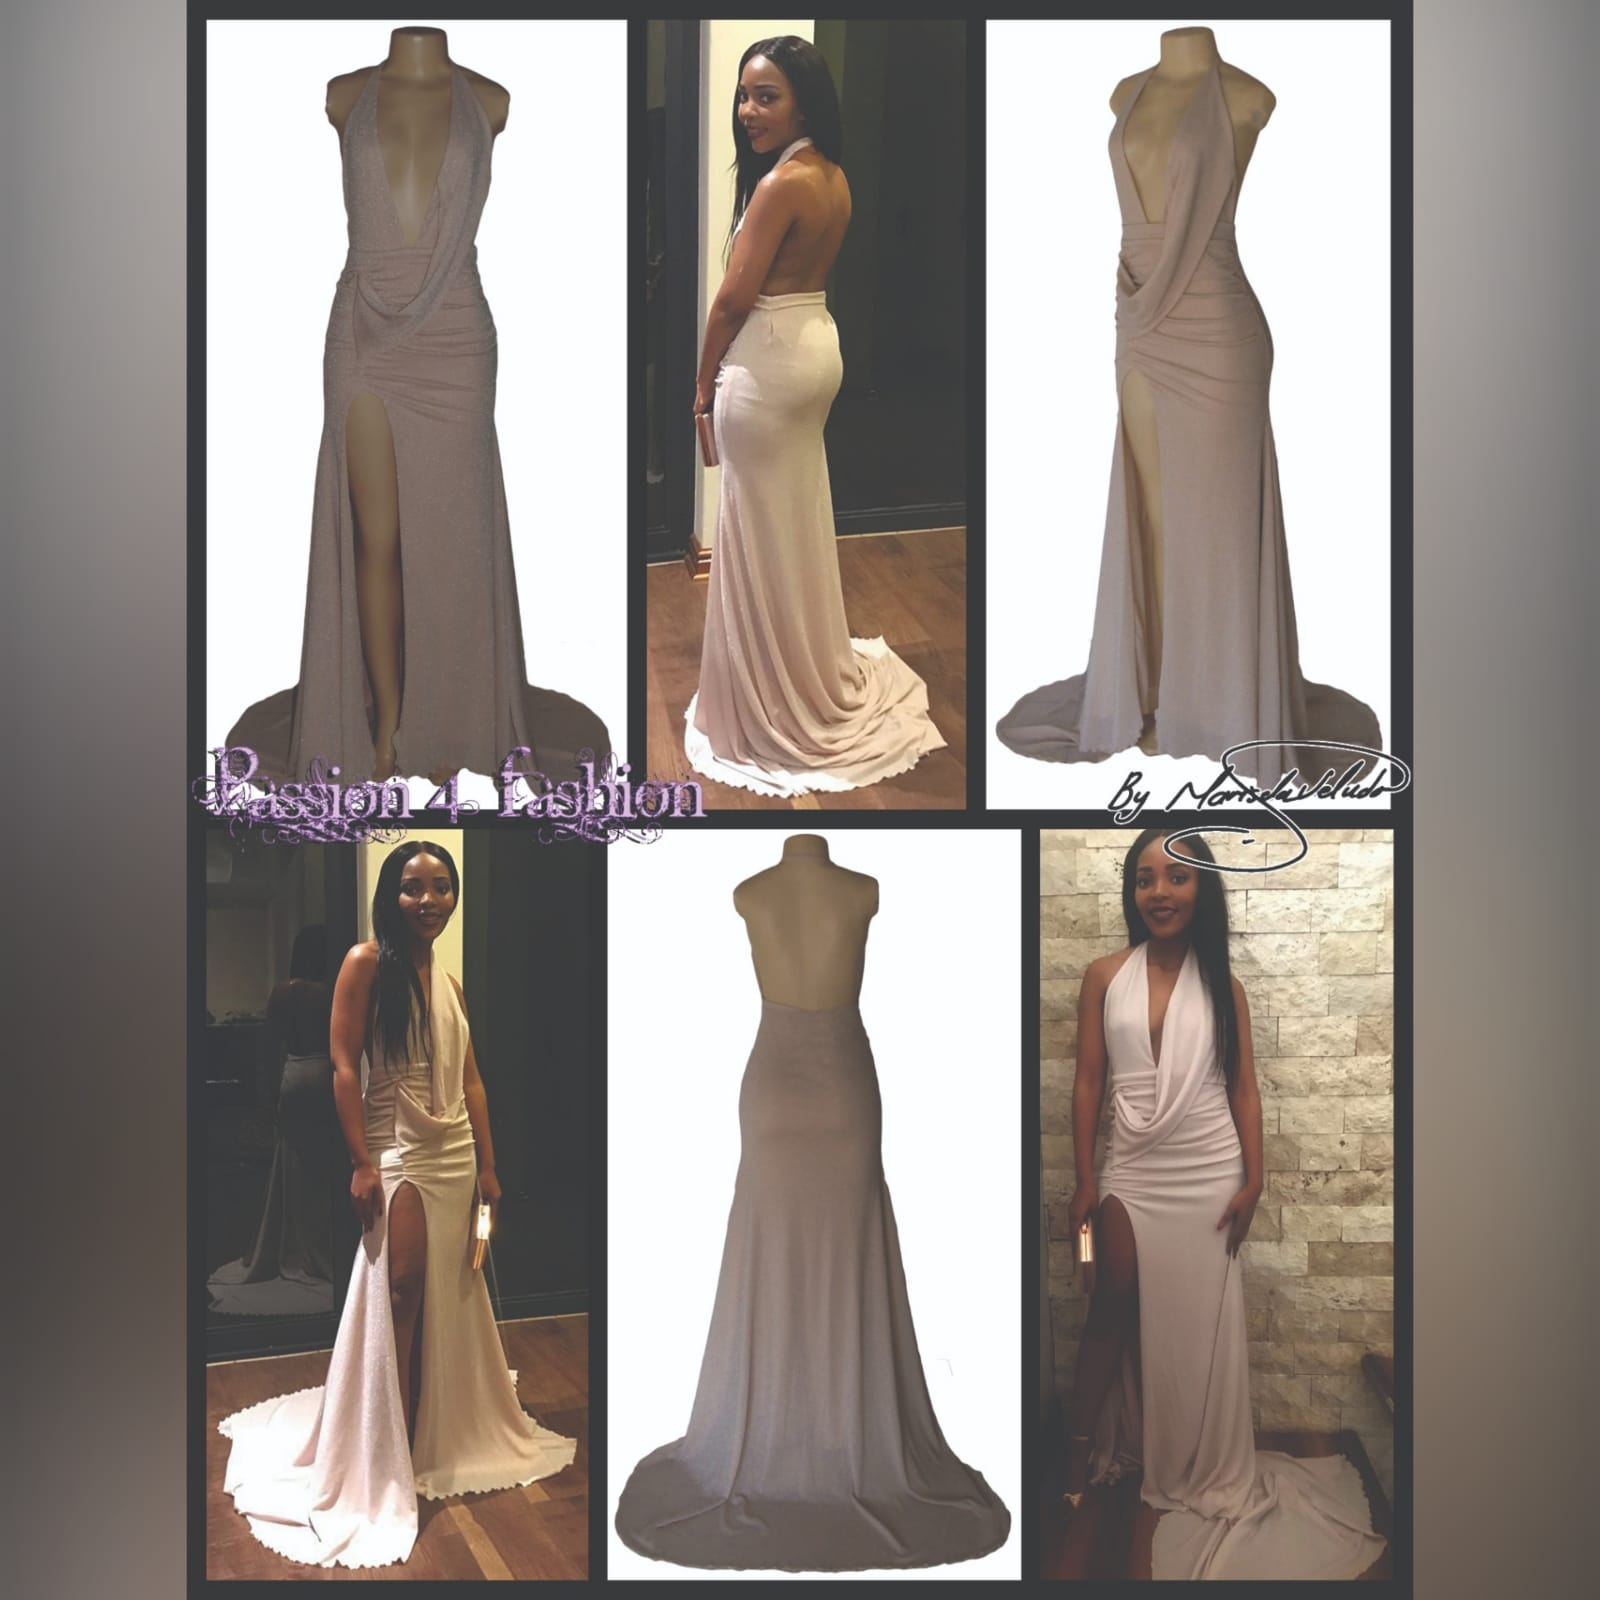 Shimmer champagne plunging neckline occasion dress 4 shimmer champagne plunging neckline occasion dress with a naked back. A train and a slit. With a draped bodice effect.